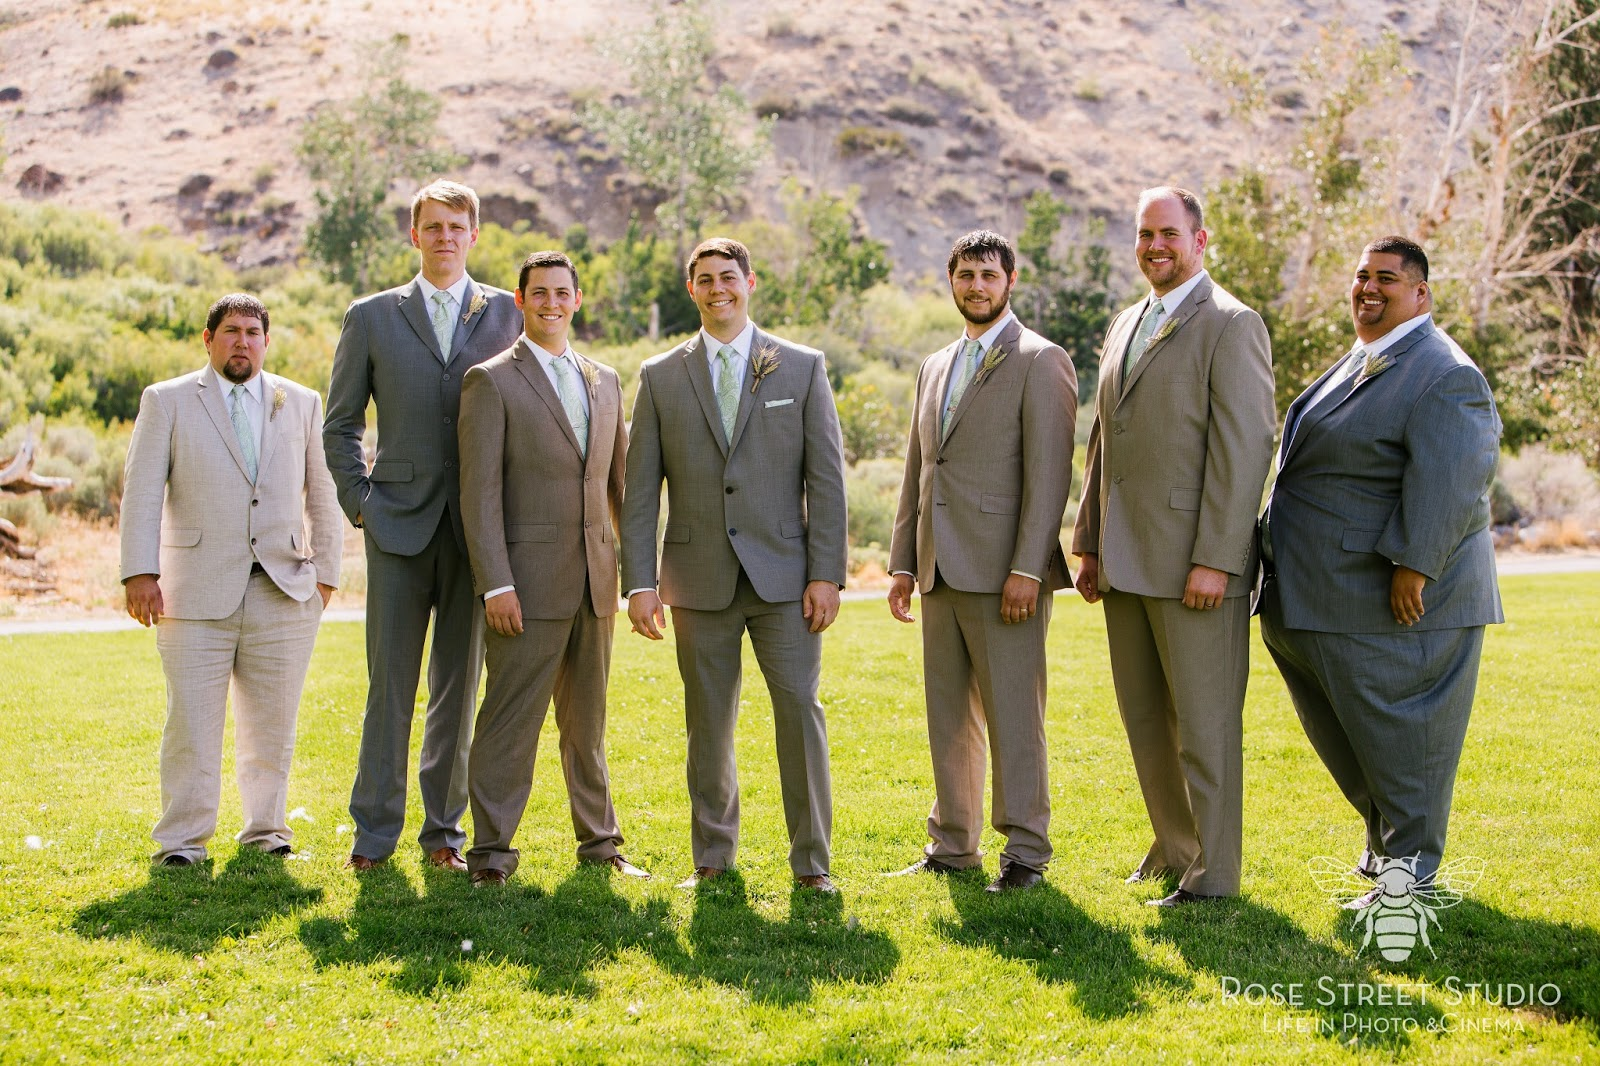 Groom and groomsmen in shades of grey l Rose Street Studio l Take the Cake Event Planning